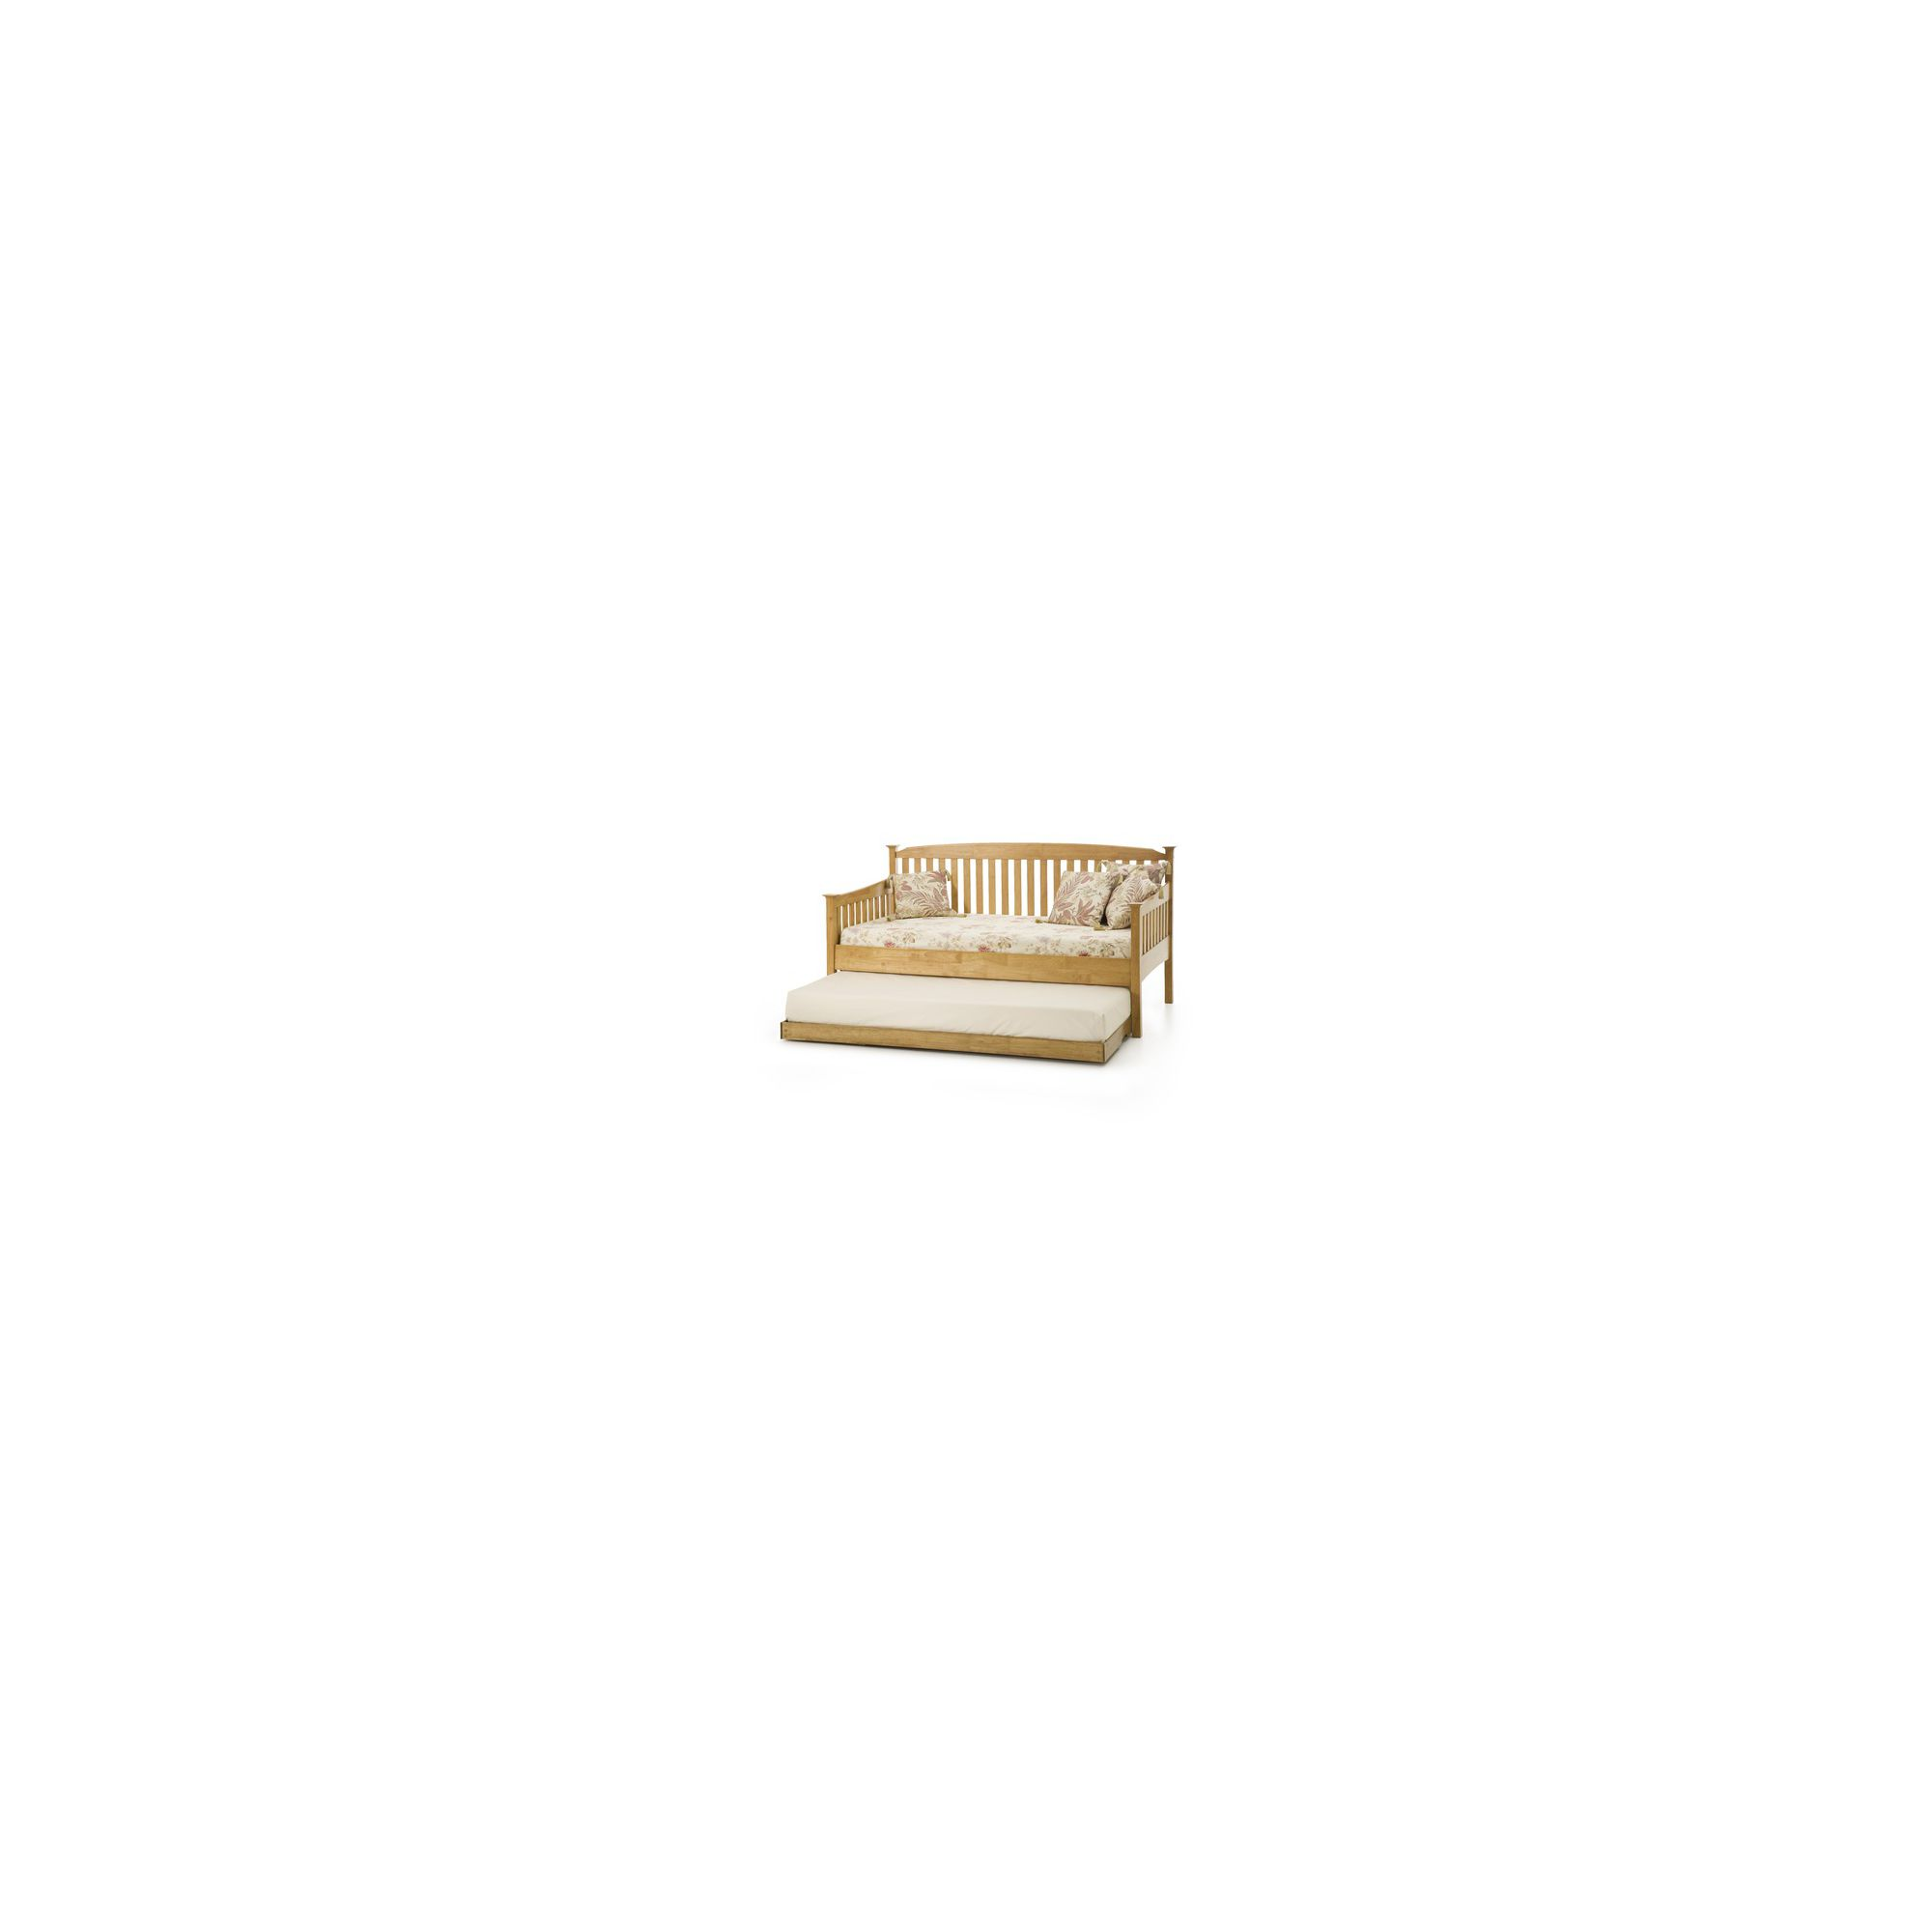 Serene Furnishings Eleanor Single Day Bed - Honey Oak at Tesco Direct